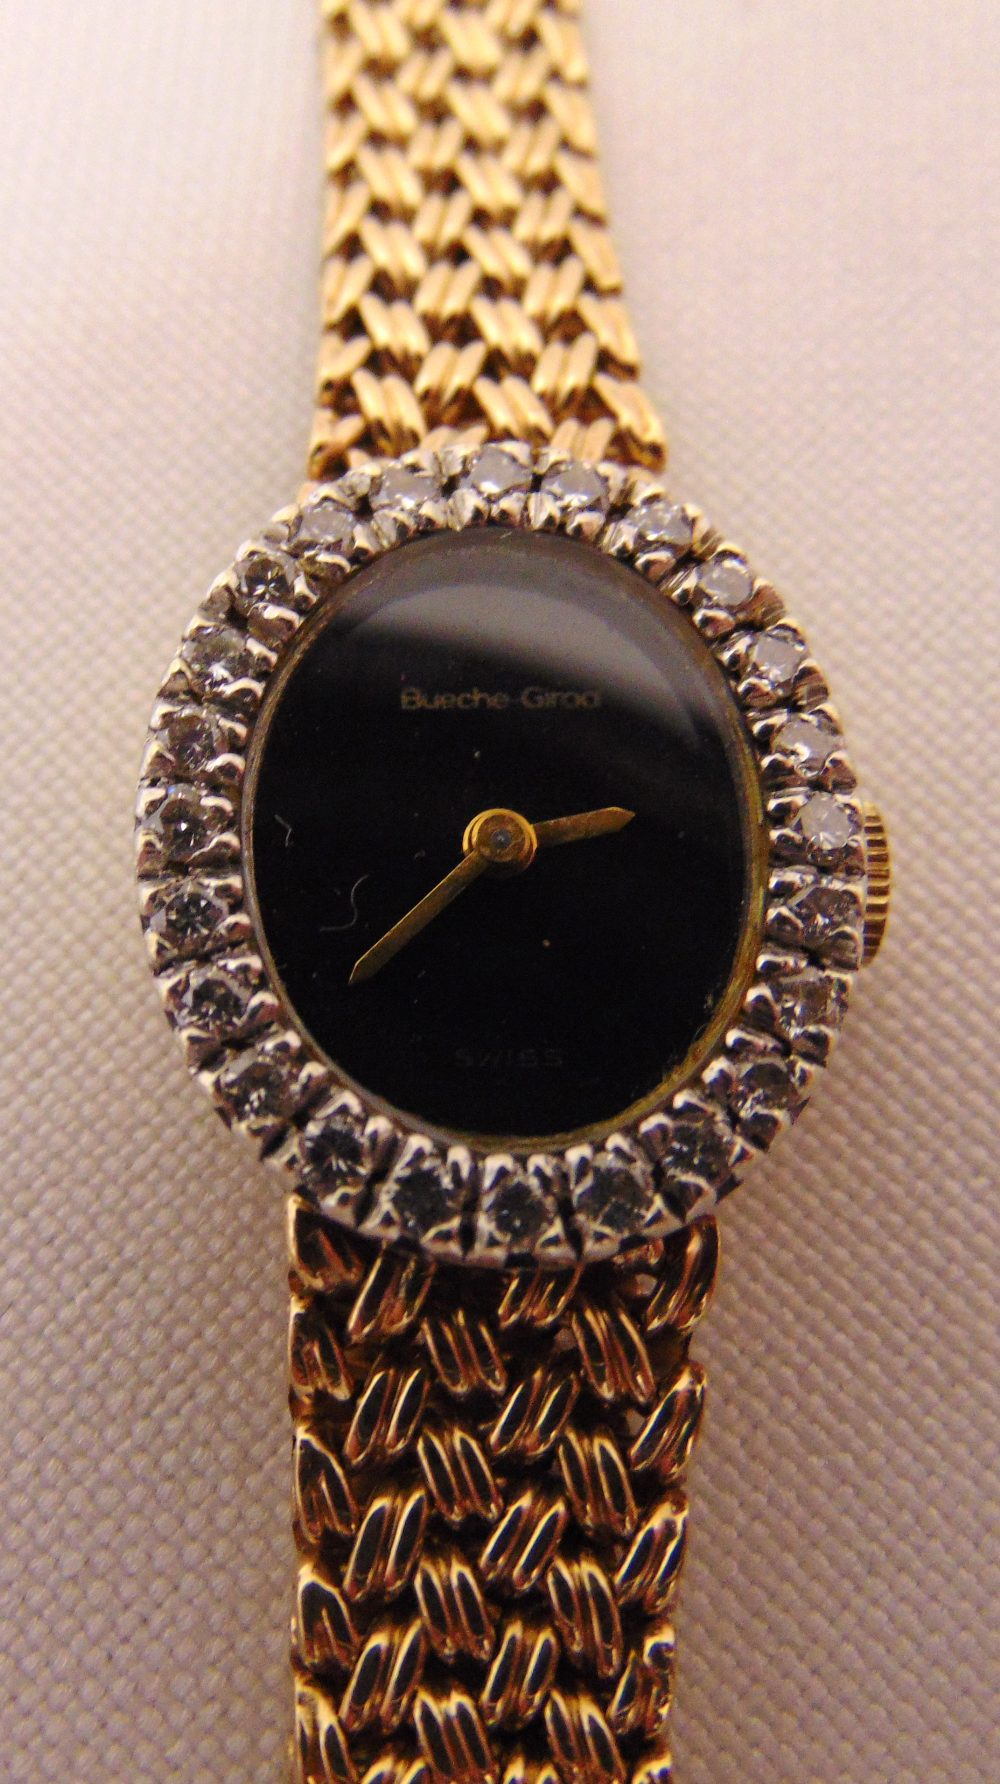 Bueche Girod 9ct gold ladies wristwatch with diamond bezel and integral 9ct gold bracelet, approx - Image 2 of 2